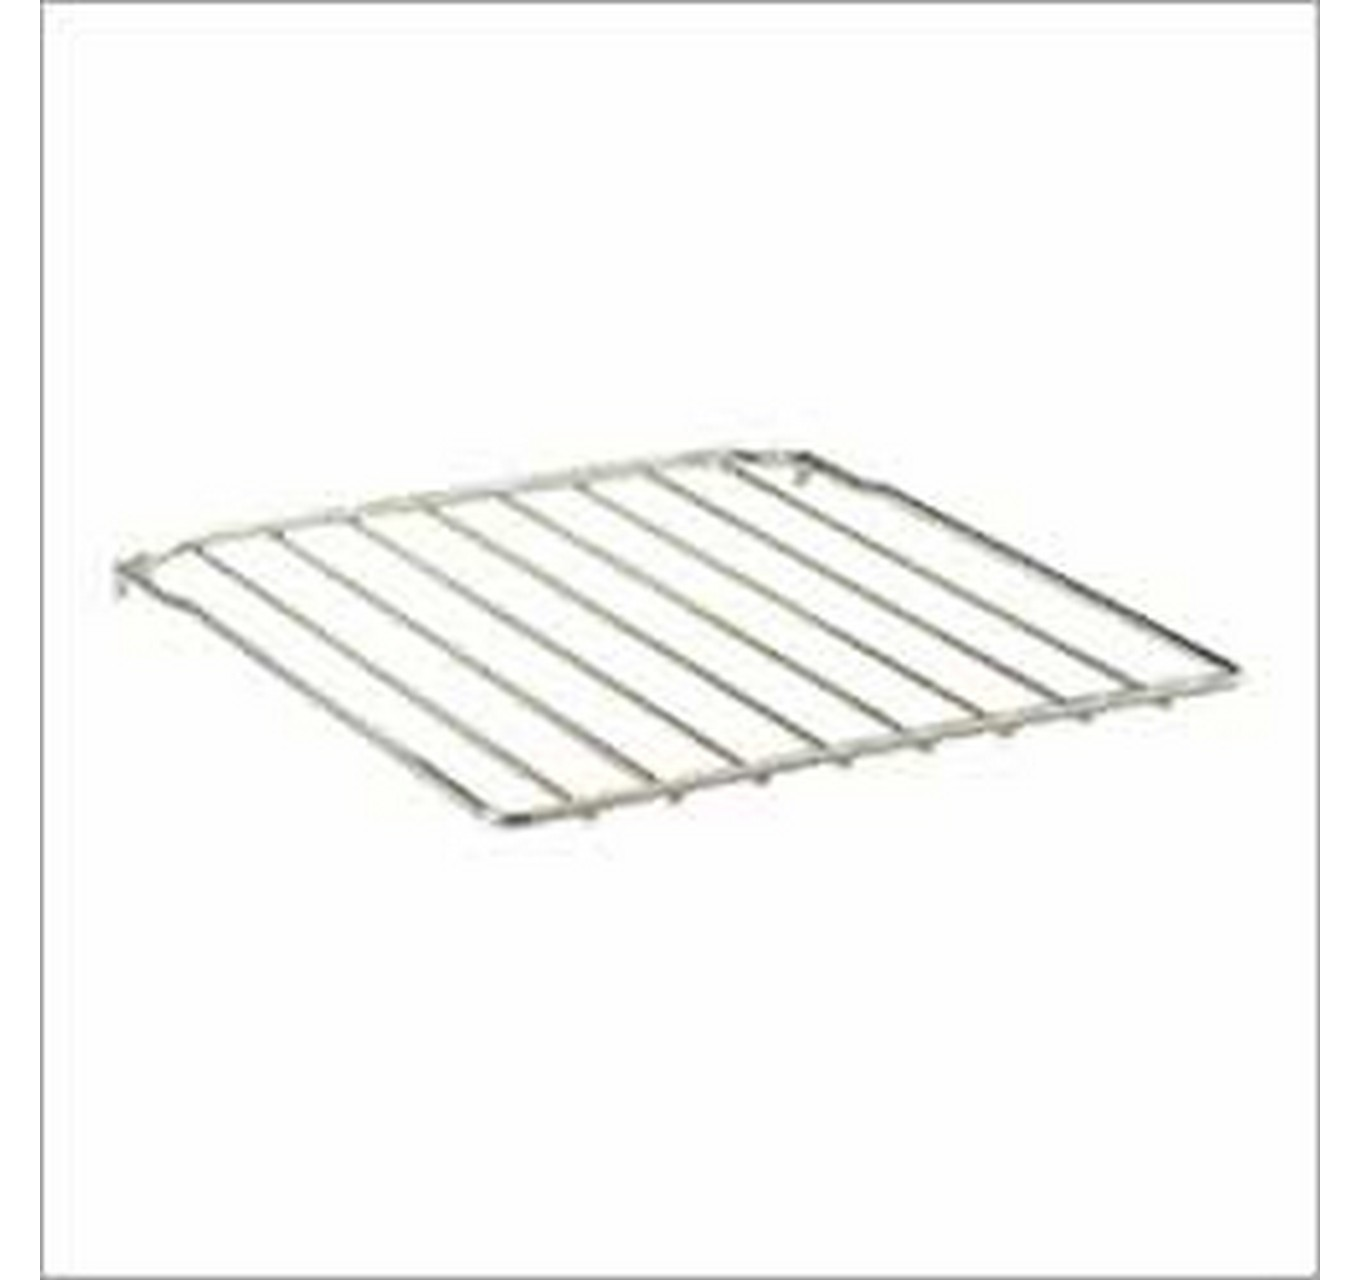 Rayburn Oven Grid Shelf